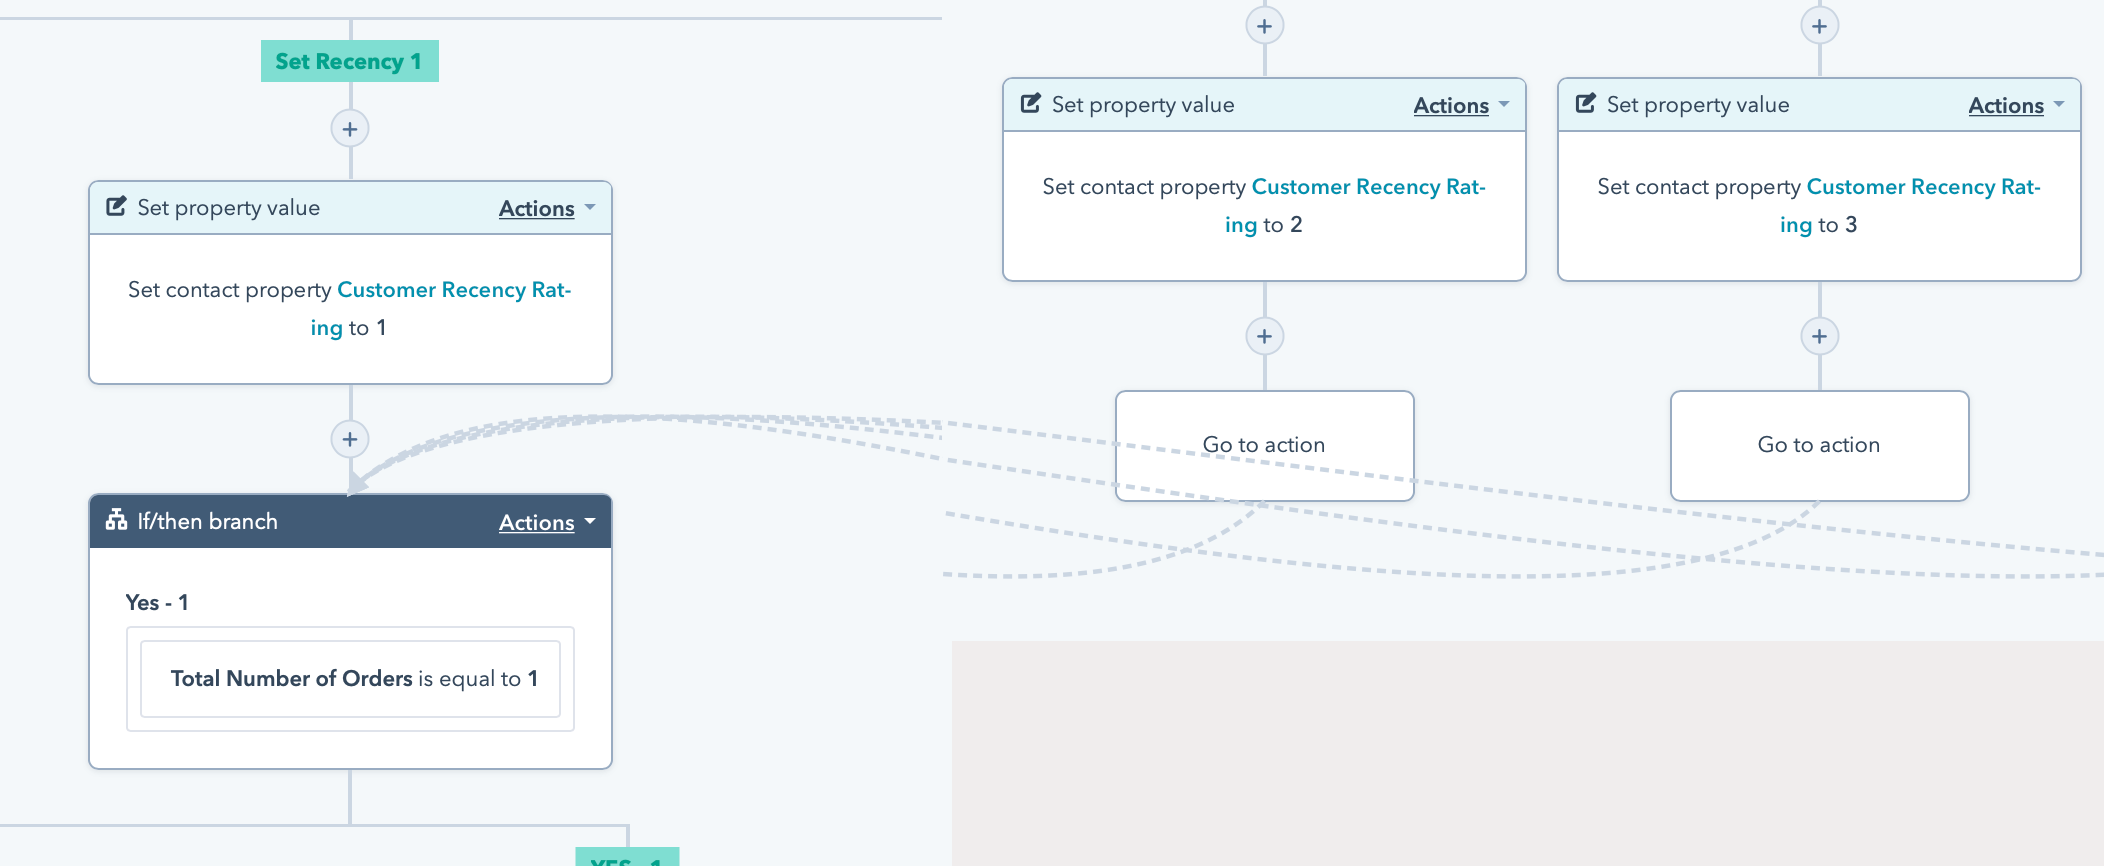 Workflow Actions Part 6 Go to action